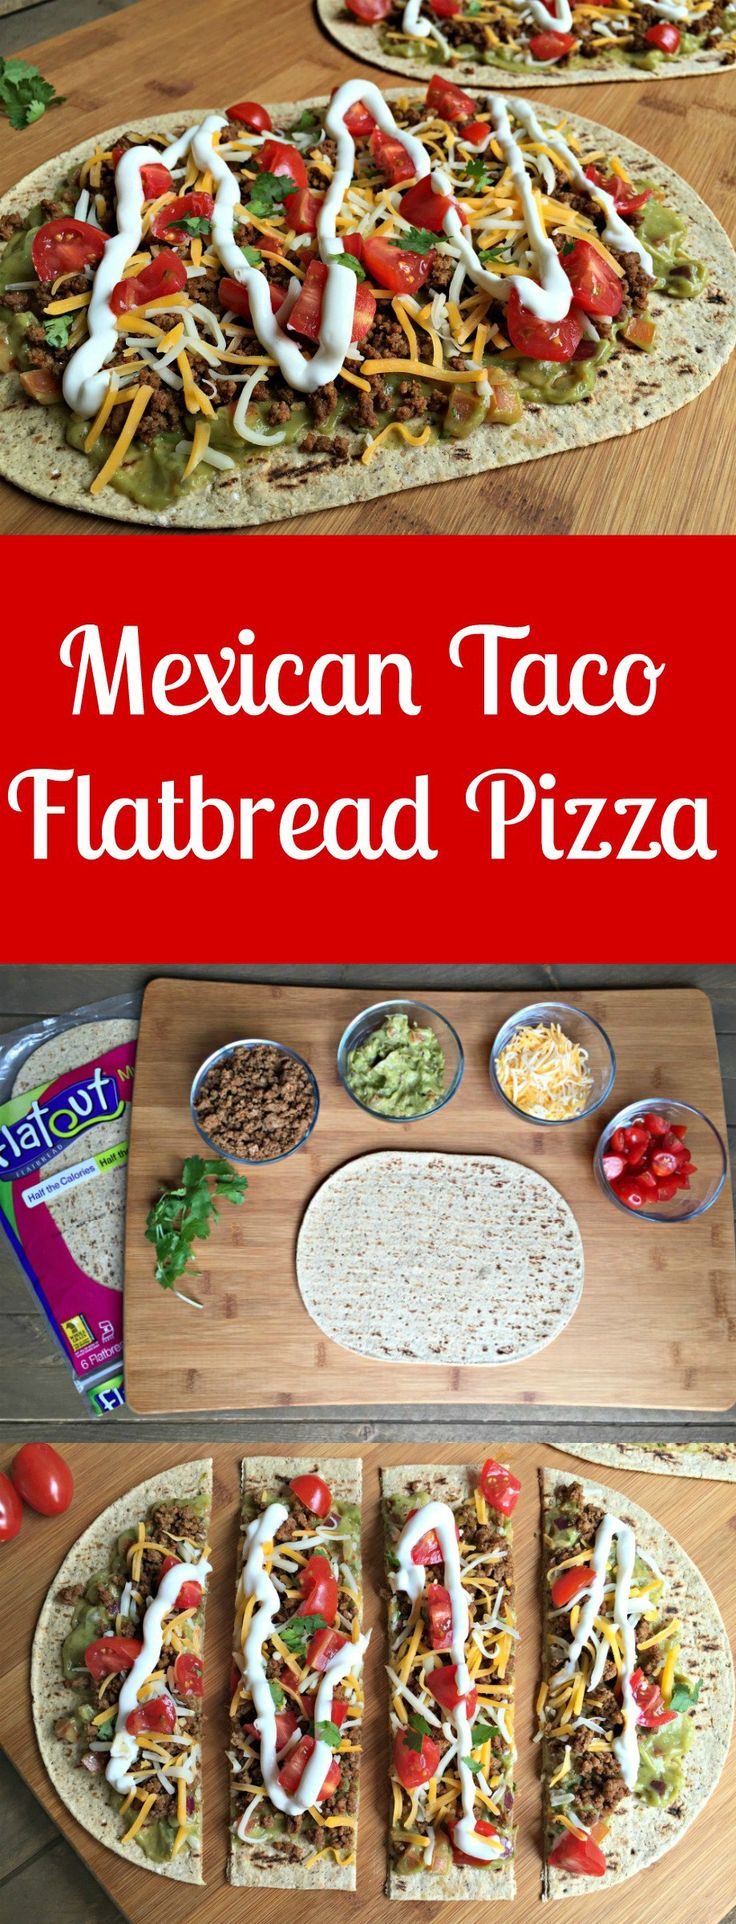 100 Flatbread Pizza Recipes On Pinterest Grilled Flatbread Pizza Healthy Flatbread Recipes